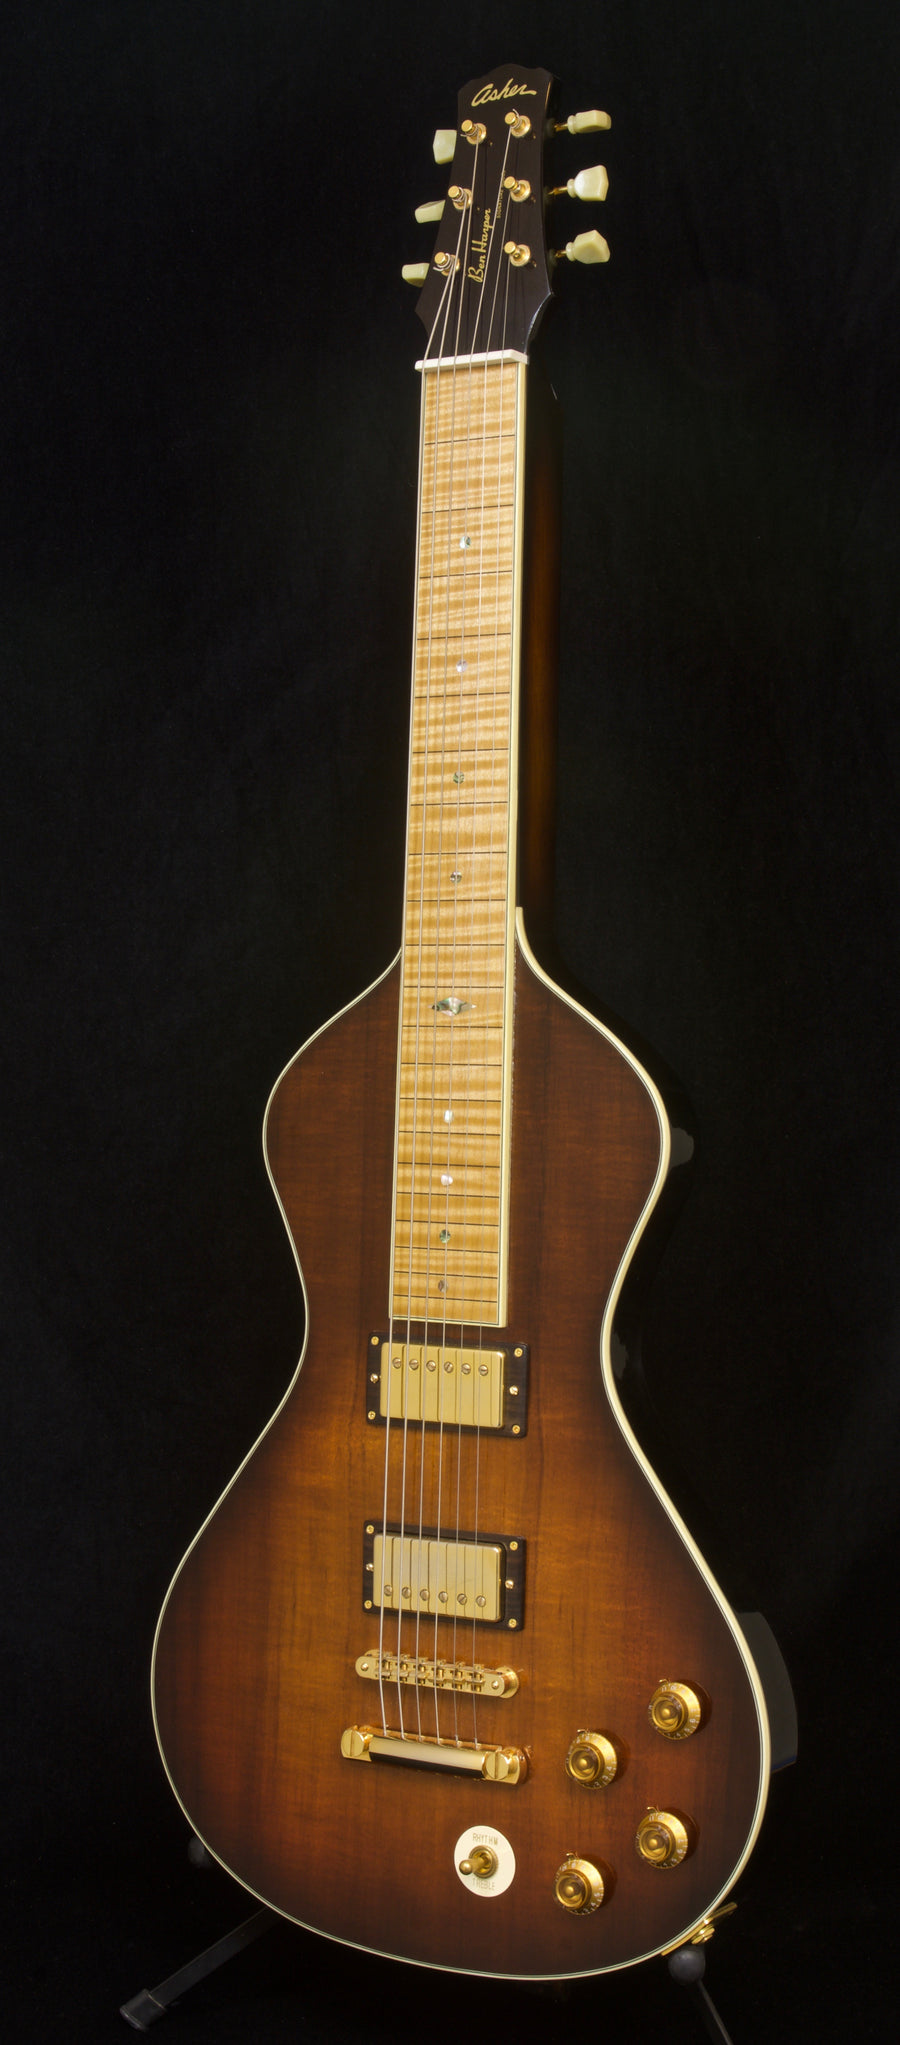 SOLD 2019 Asher Ben Harper Signature Model Lap Steel - Koa Top Tobacco Burst with Gold Hardware